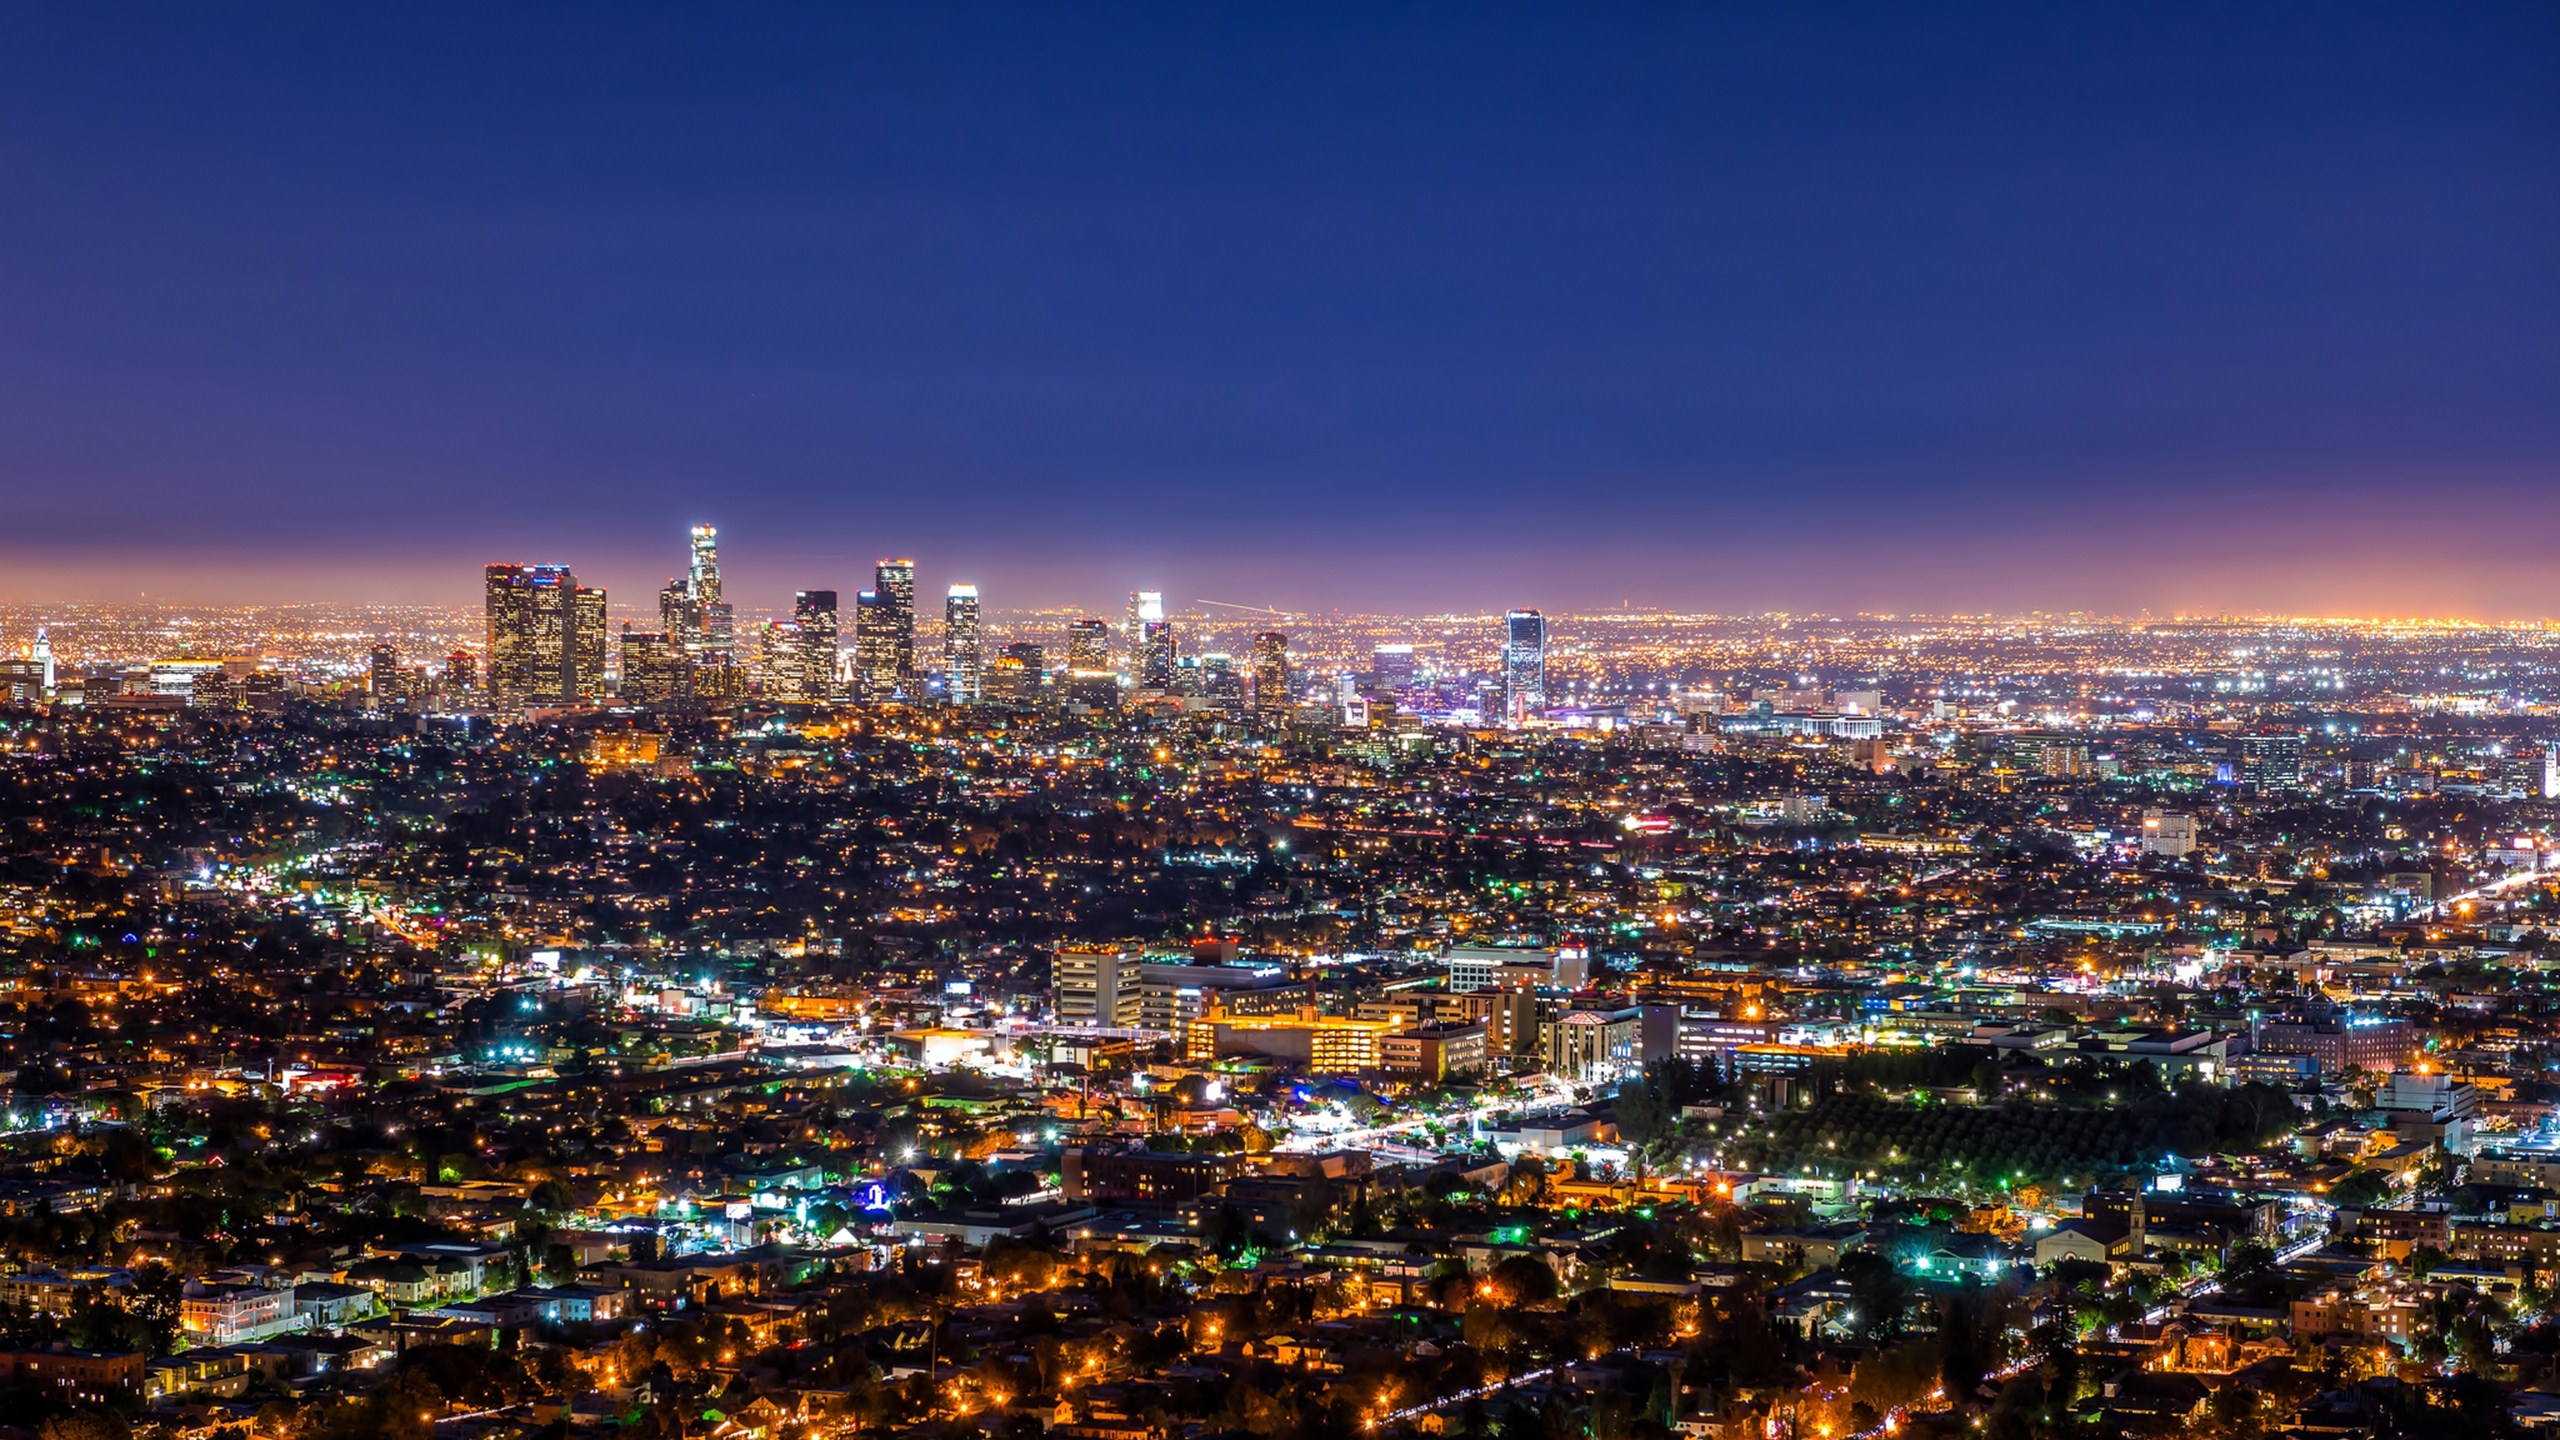 hd wallpaper background id478847 2560x1440 man made los angeles 13 like